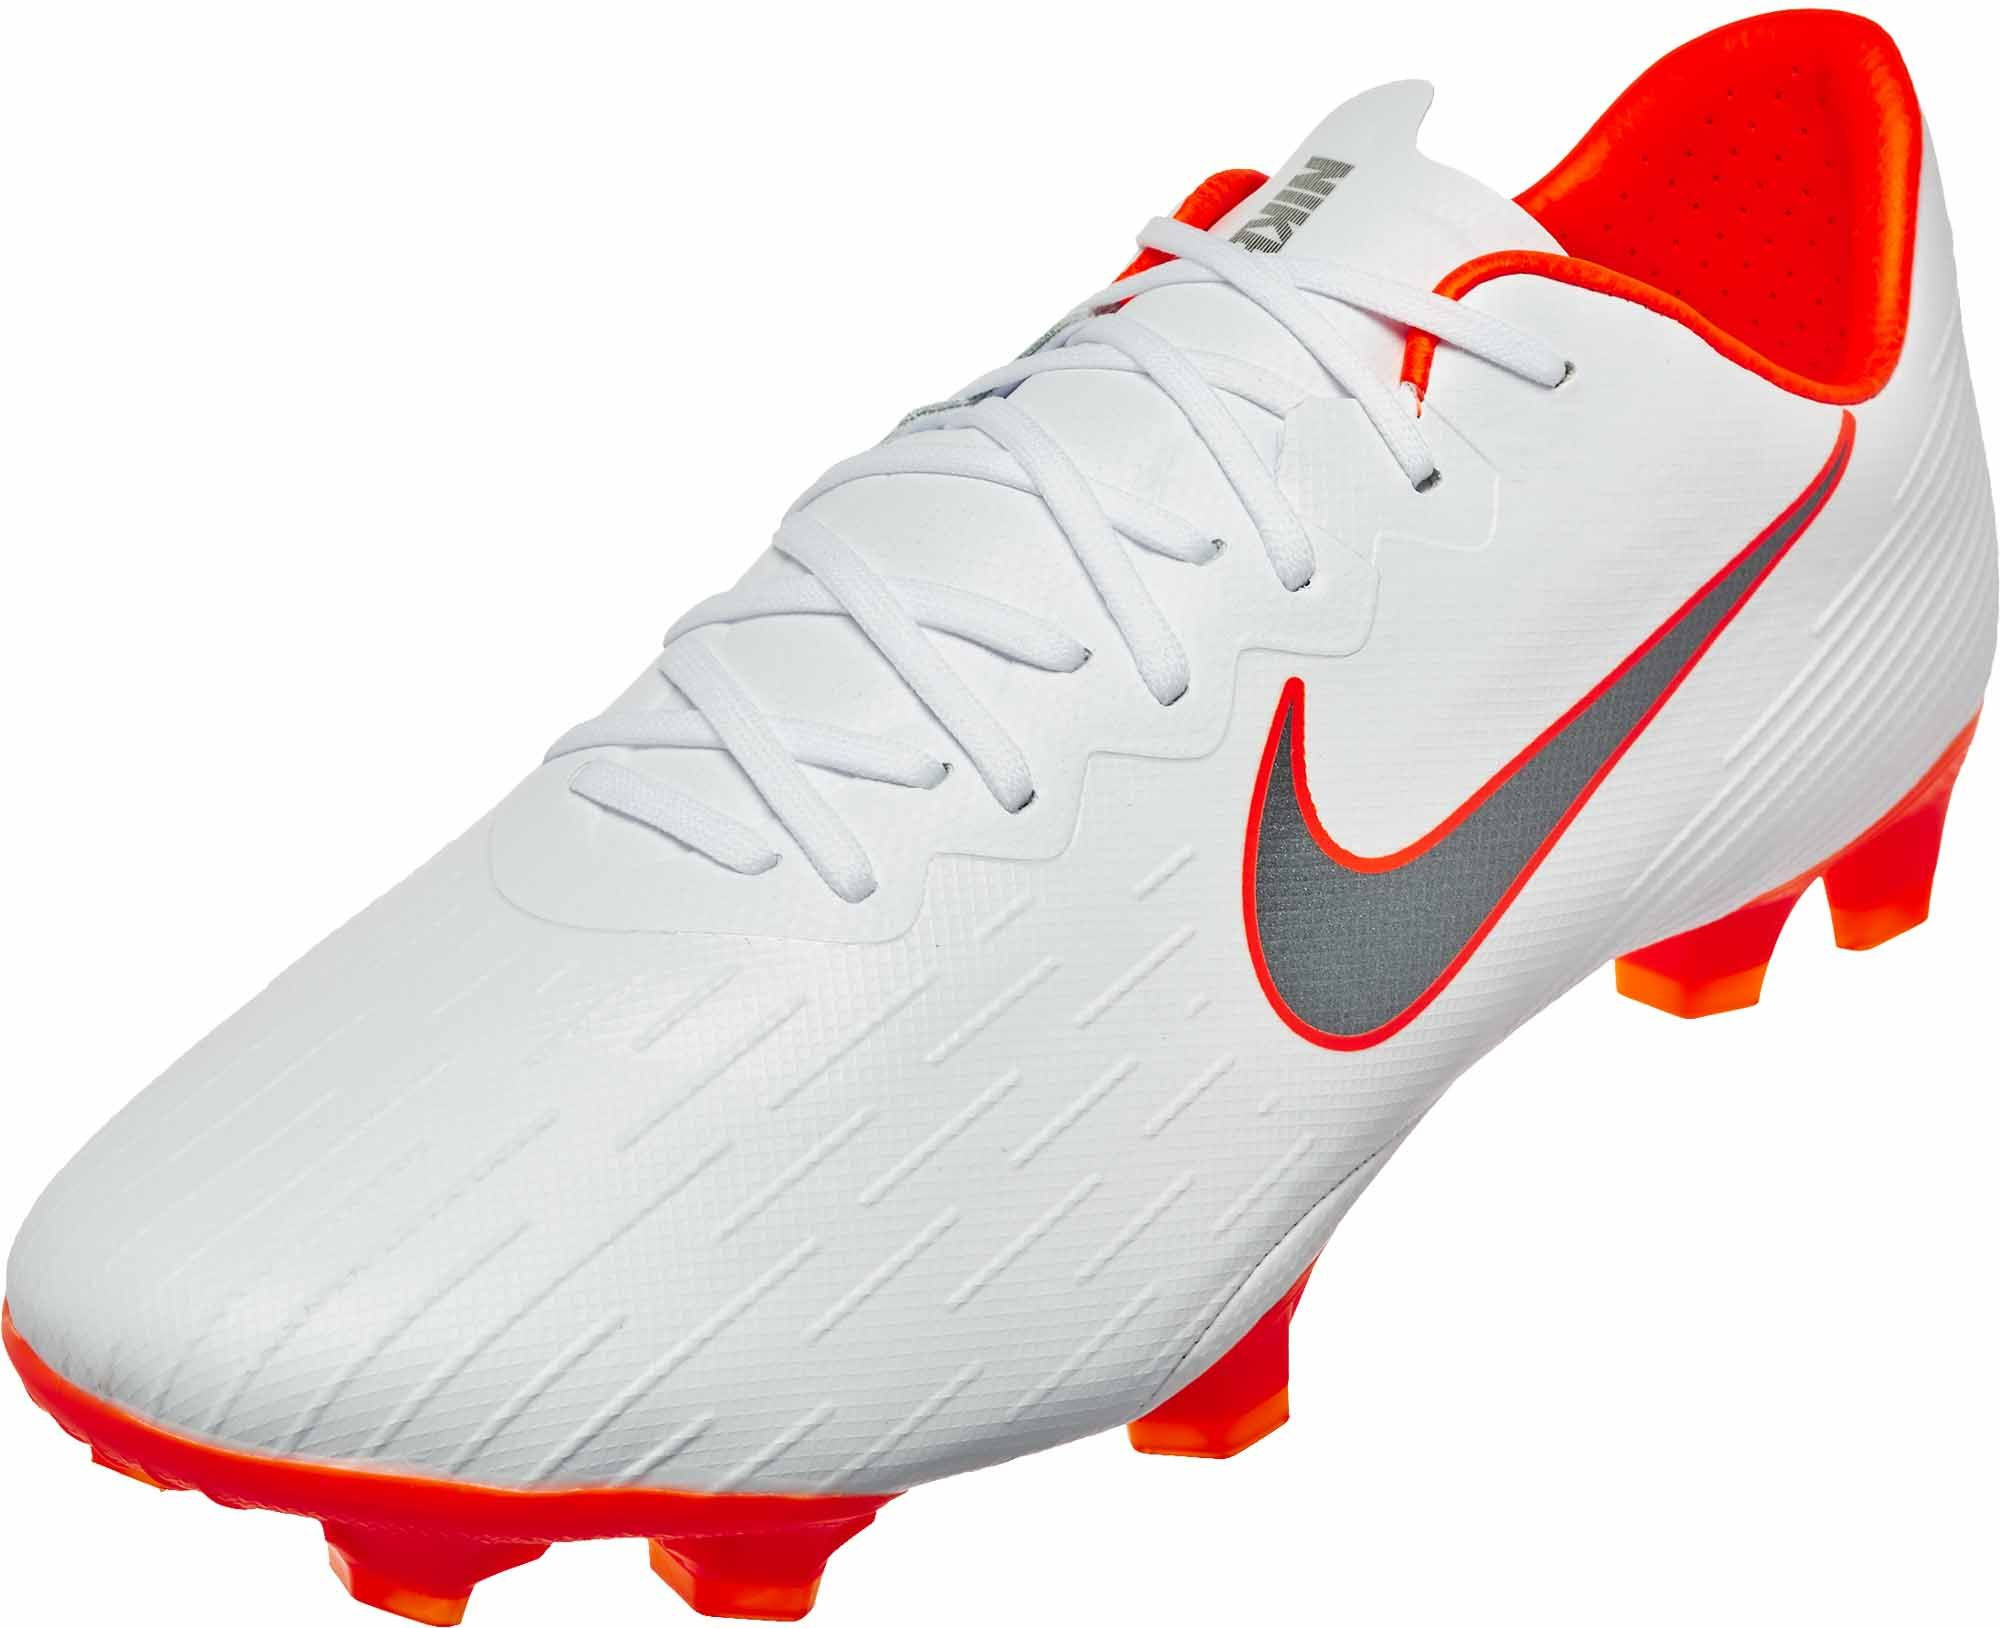 wholesale dealer d50eb e4b2e Just Do It pack Nike Mercurial Vapor 12 Pro. Buy yours from SoccerPro.